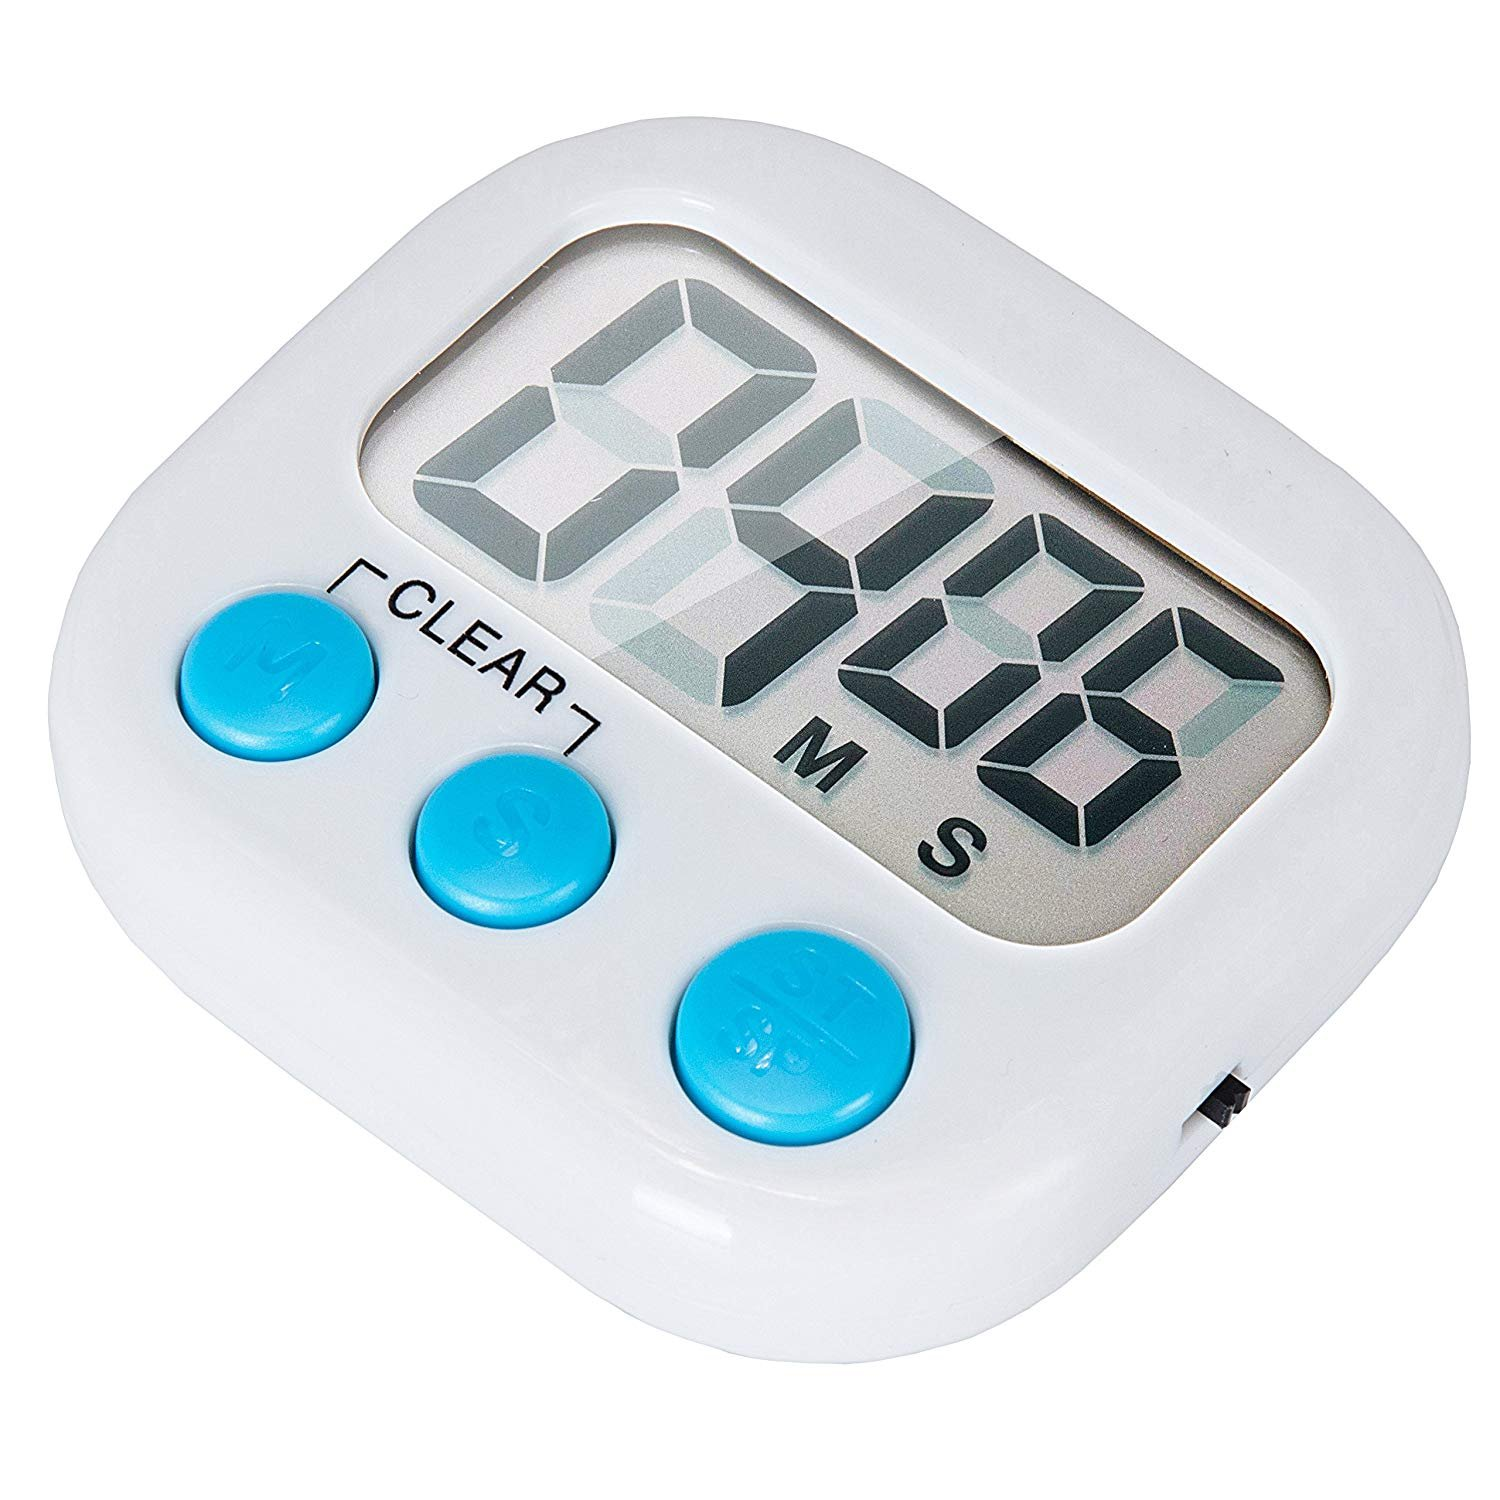 6 Pack Small Digital Kitchen Timer Magnetic Back And ON/OFF Switch,Minute Second Count Up Countdown by LinkDm (Image #3)